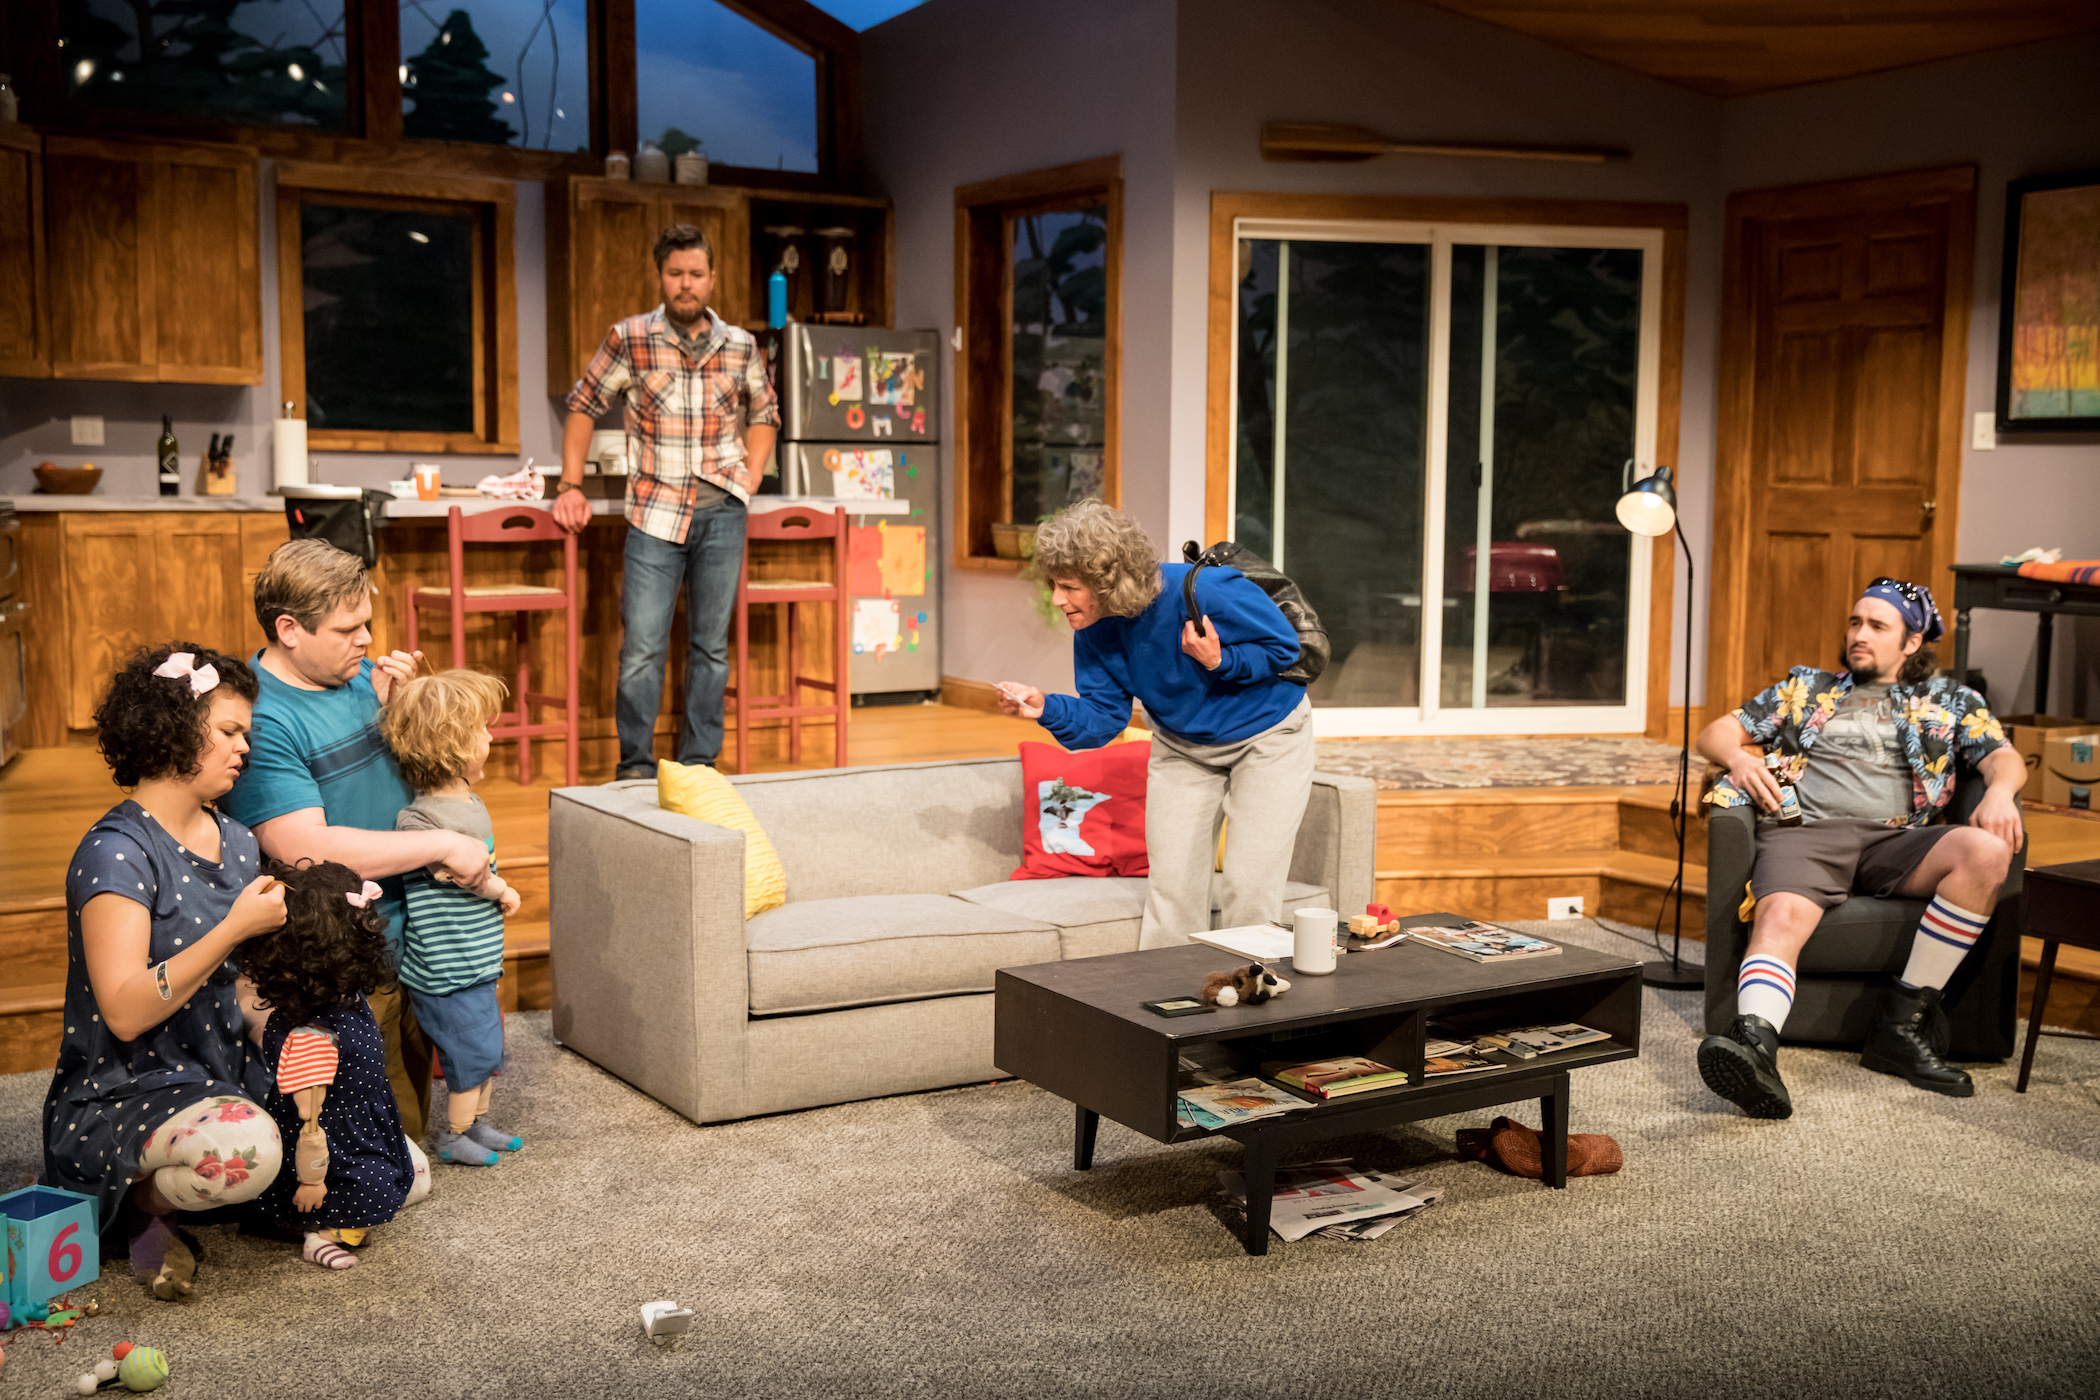 Photo by  Dan Norman . L-R: Evie ( Megan Burns ), Oscar ( Reed Sigmund) , Joyce ( Sally Wingert ) and Calvin ( Nate Cheeseman ) with Brad ( John Catron ) in the background